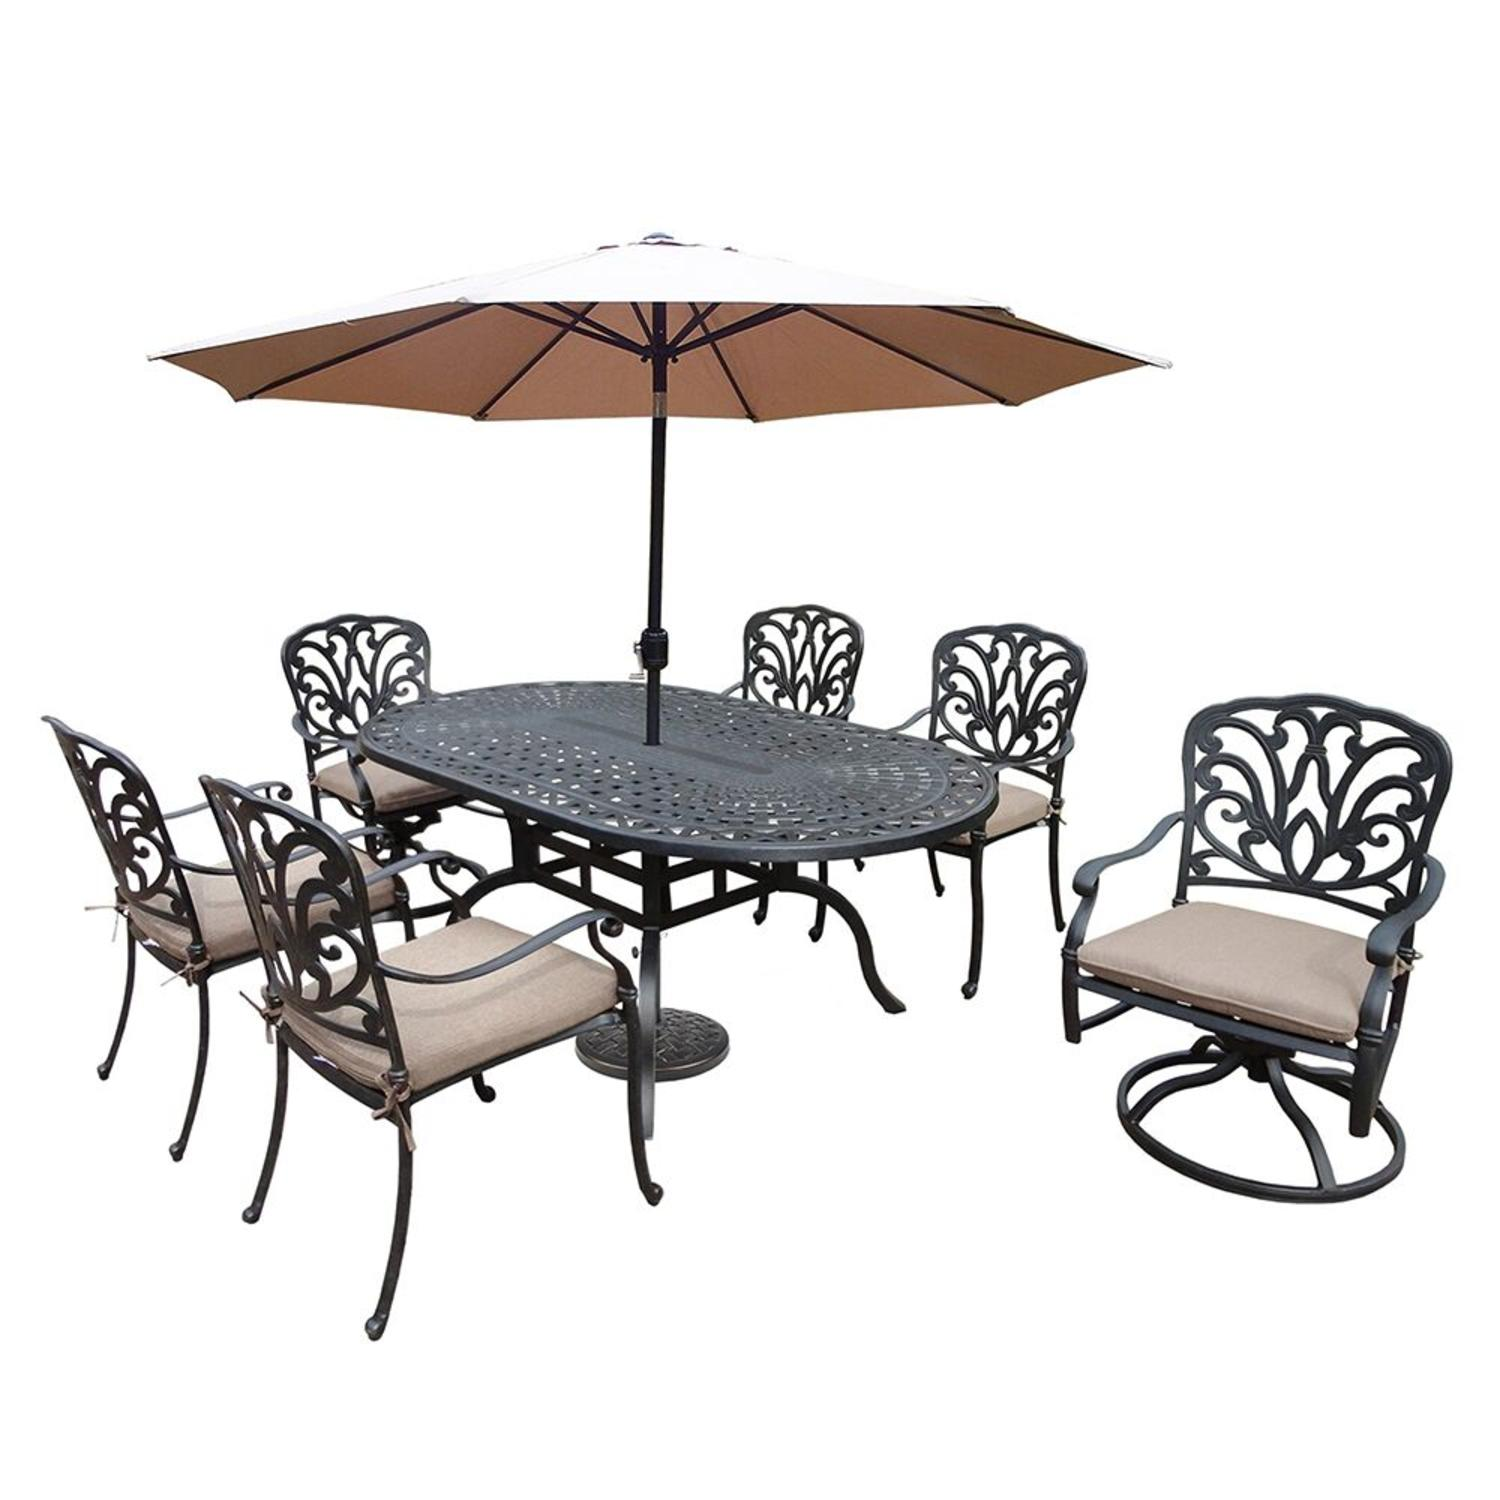 9-Piece Black Hampton Oval Outdoor Patio Dining Set w/ Cream Cushions and Umbrella